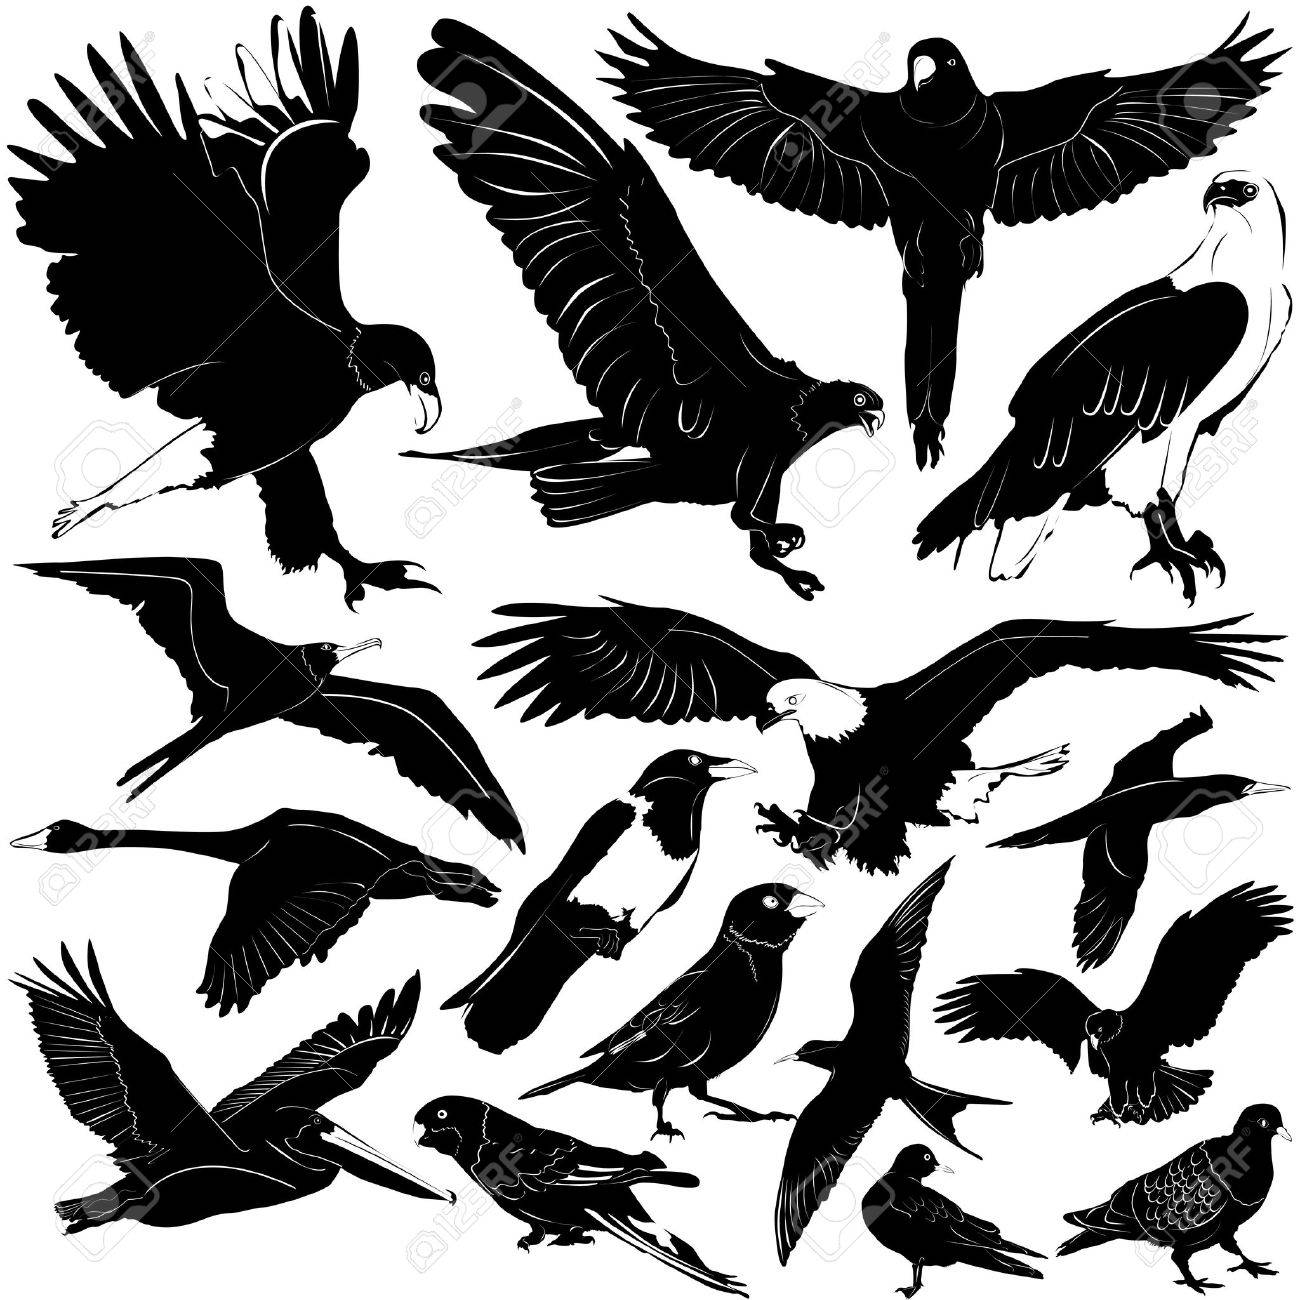 birds  details   eagle  wings   Eagle Wings Silhouette